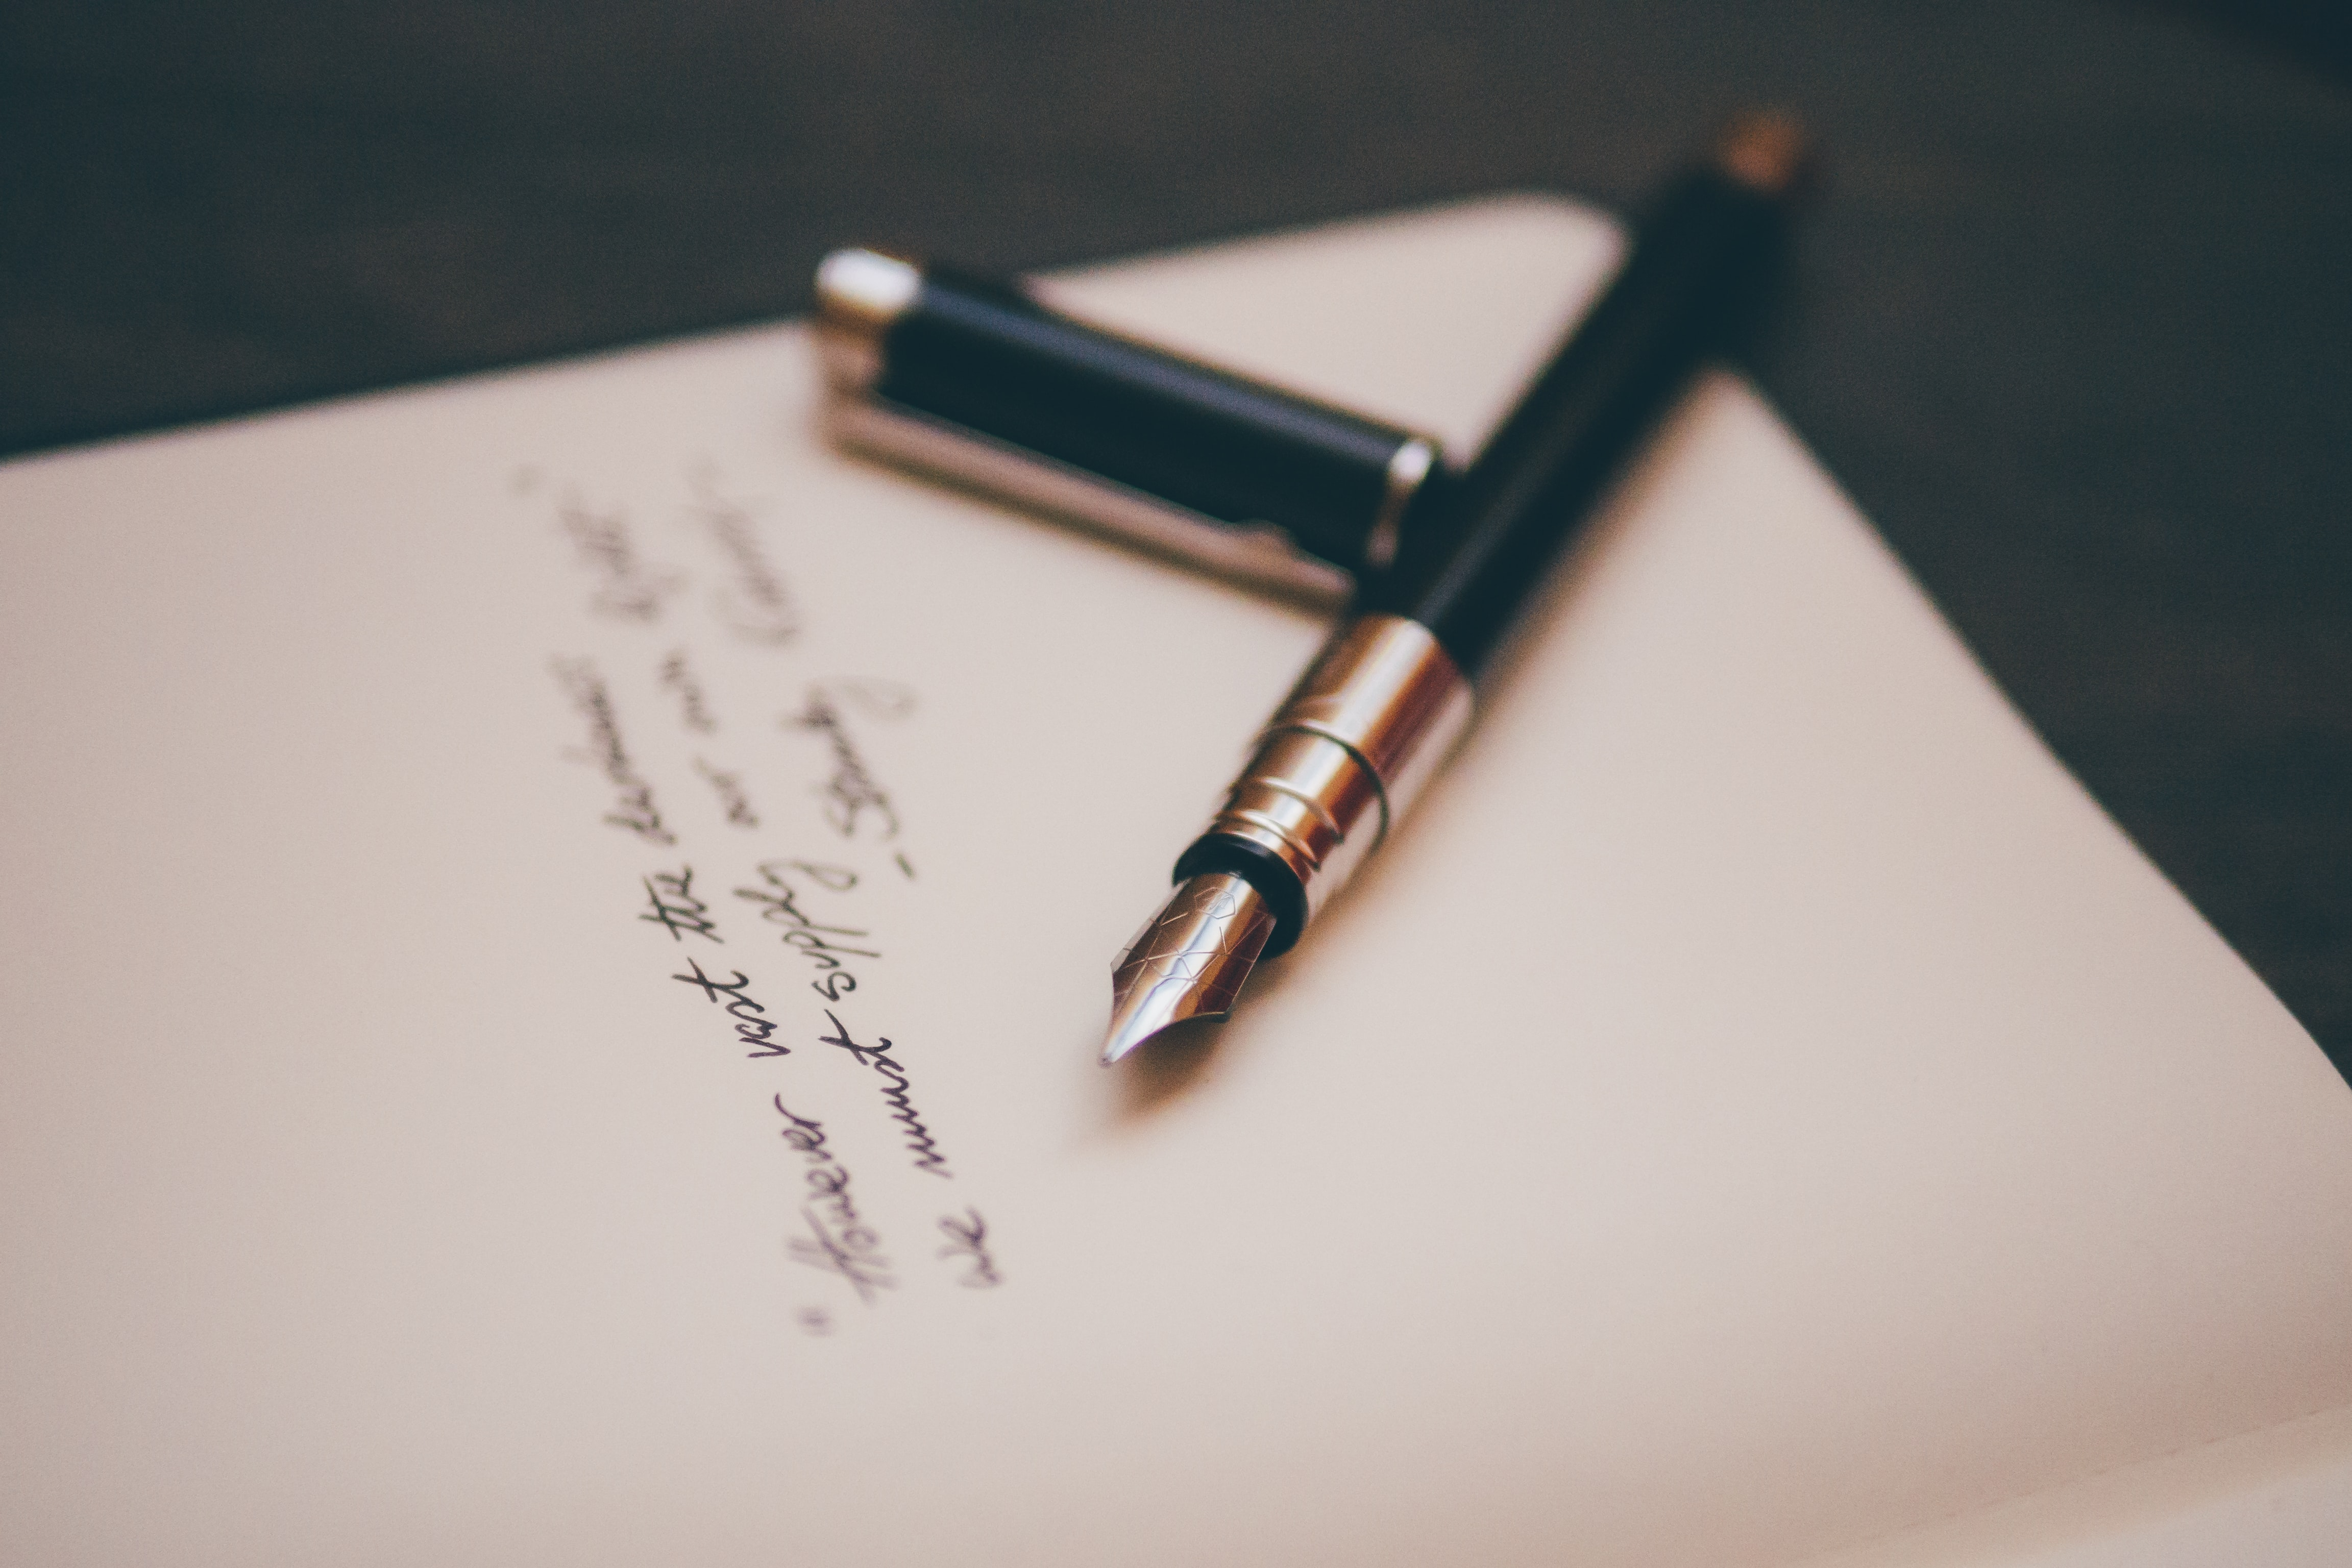 A fountain pen near cursive writing on white stationery